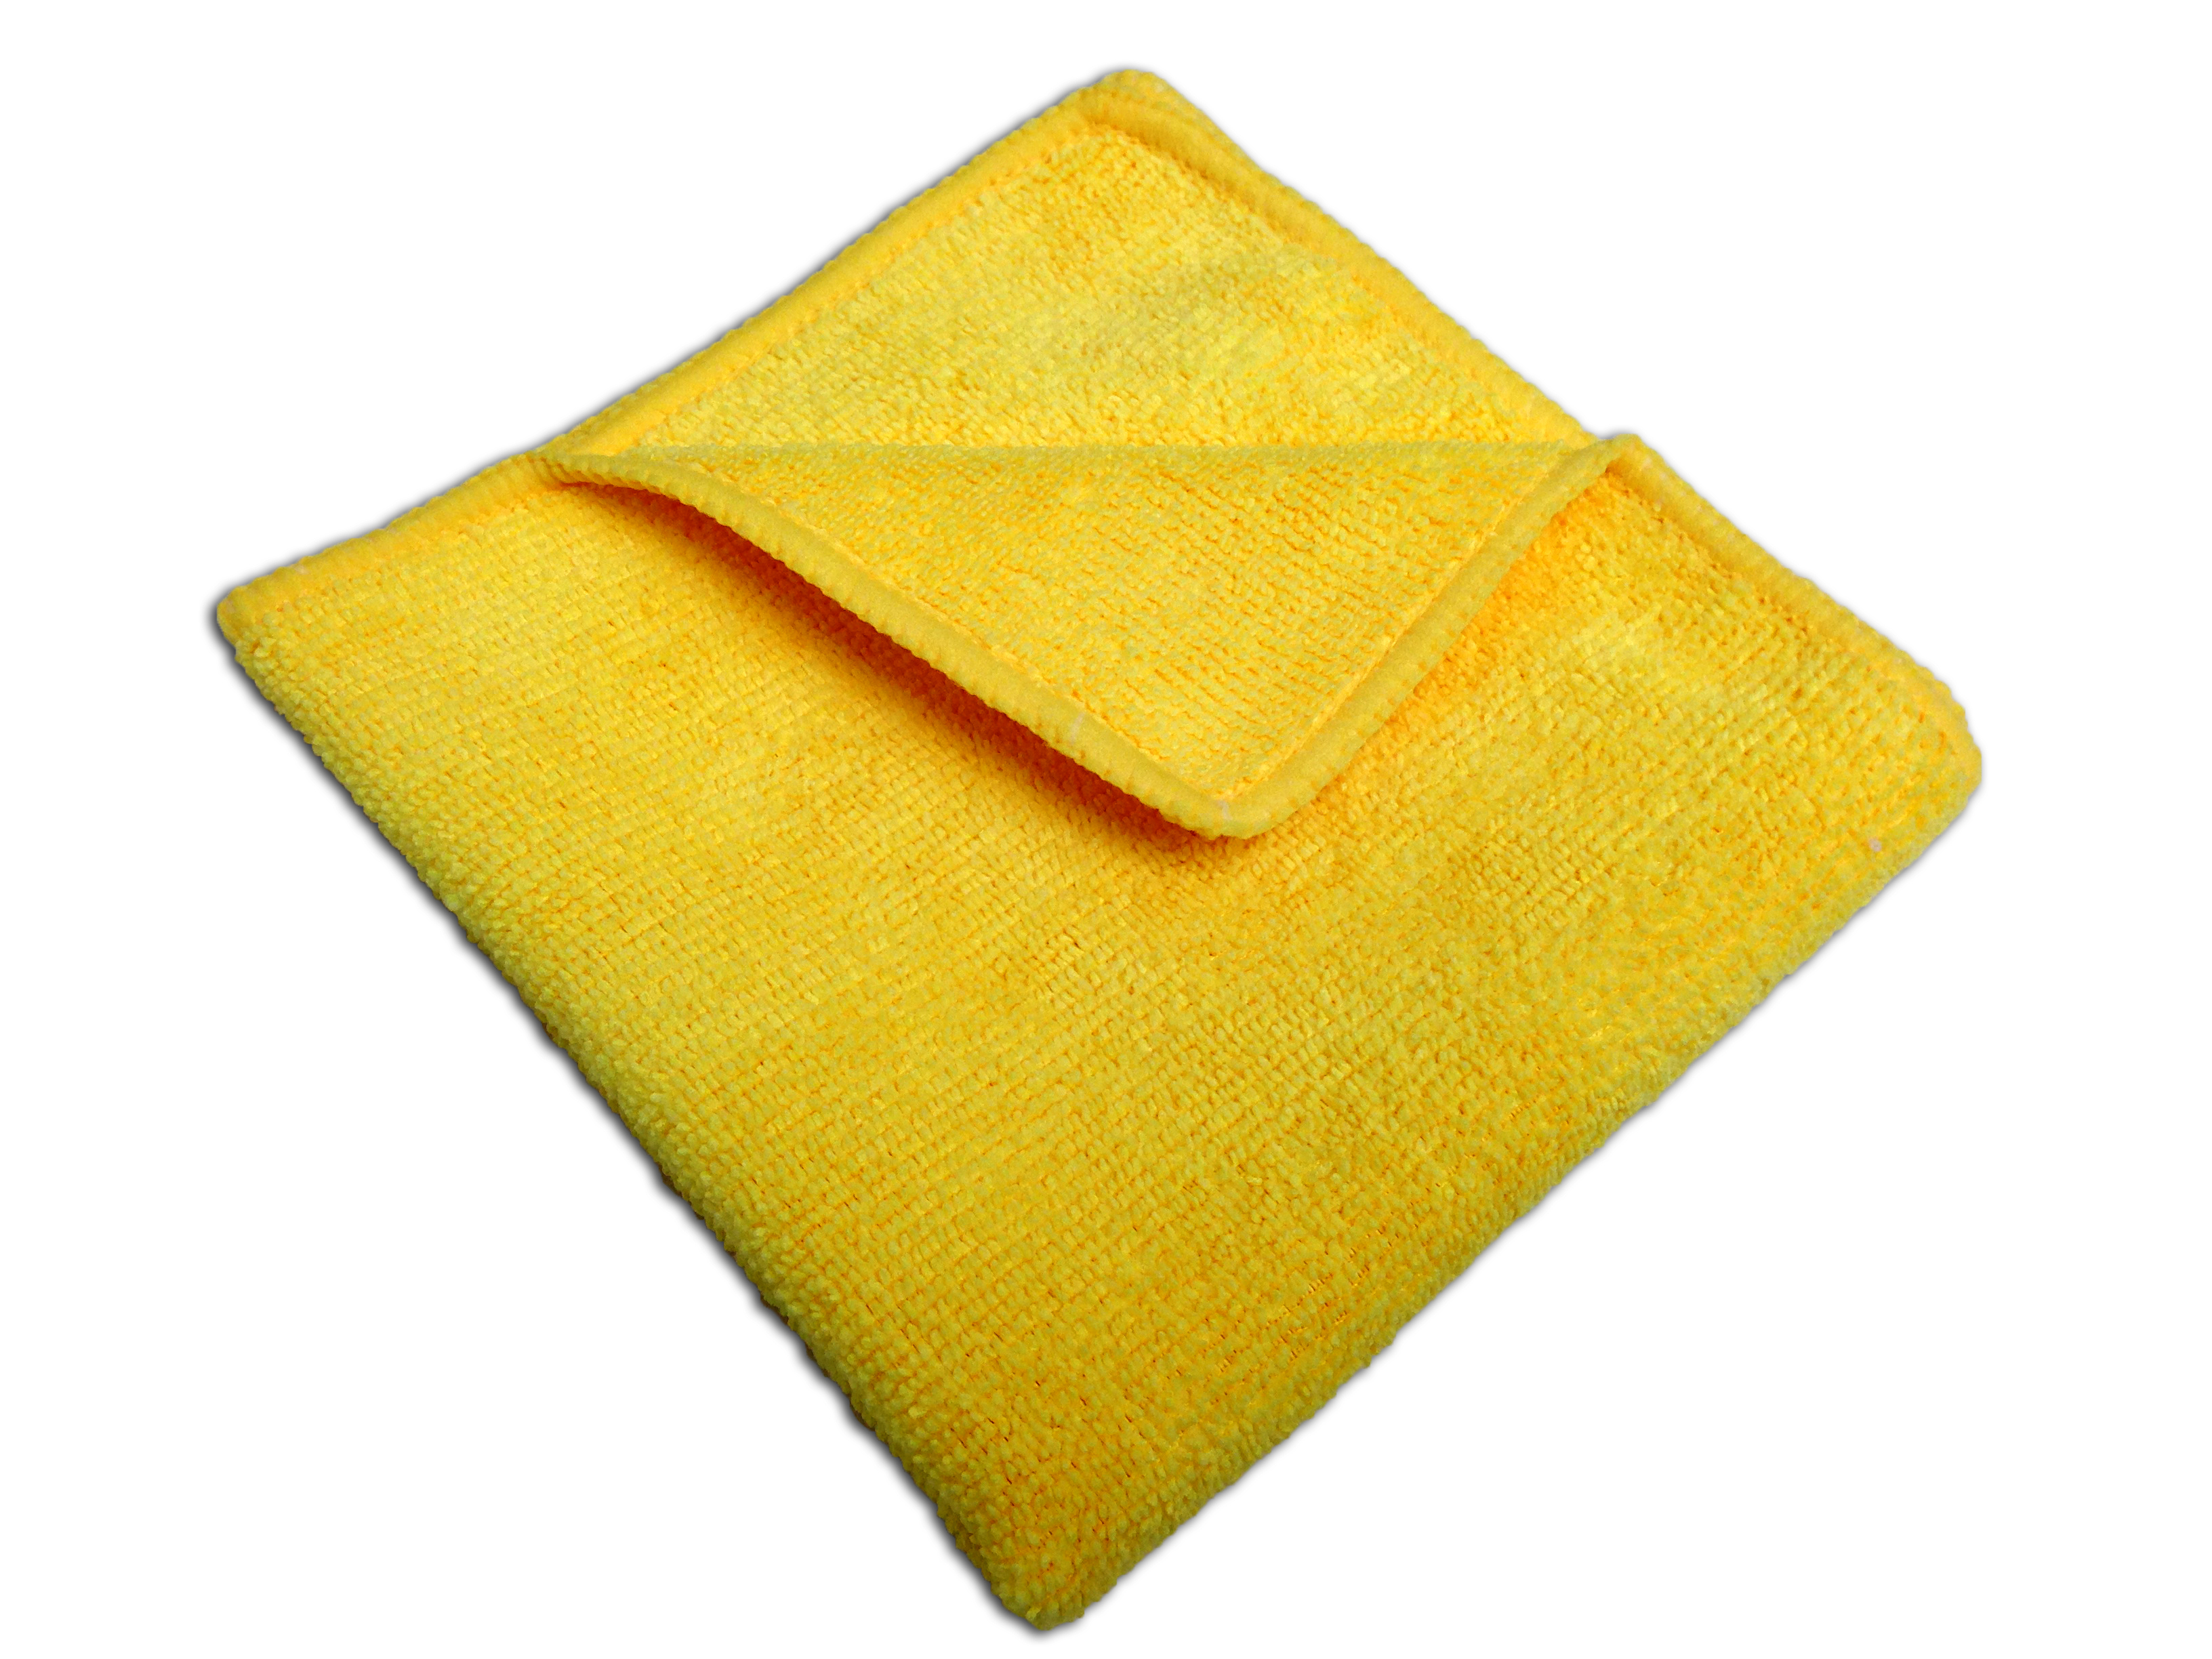 MaximMart_Microfiber_Cloth_Yellow.jpg&f=